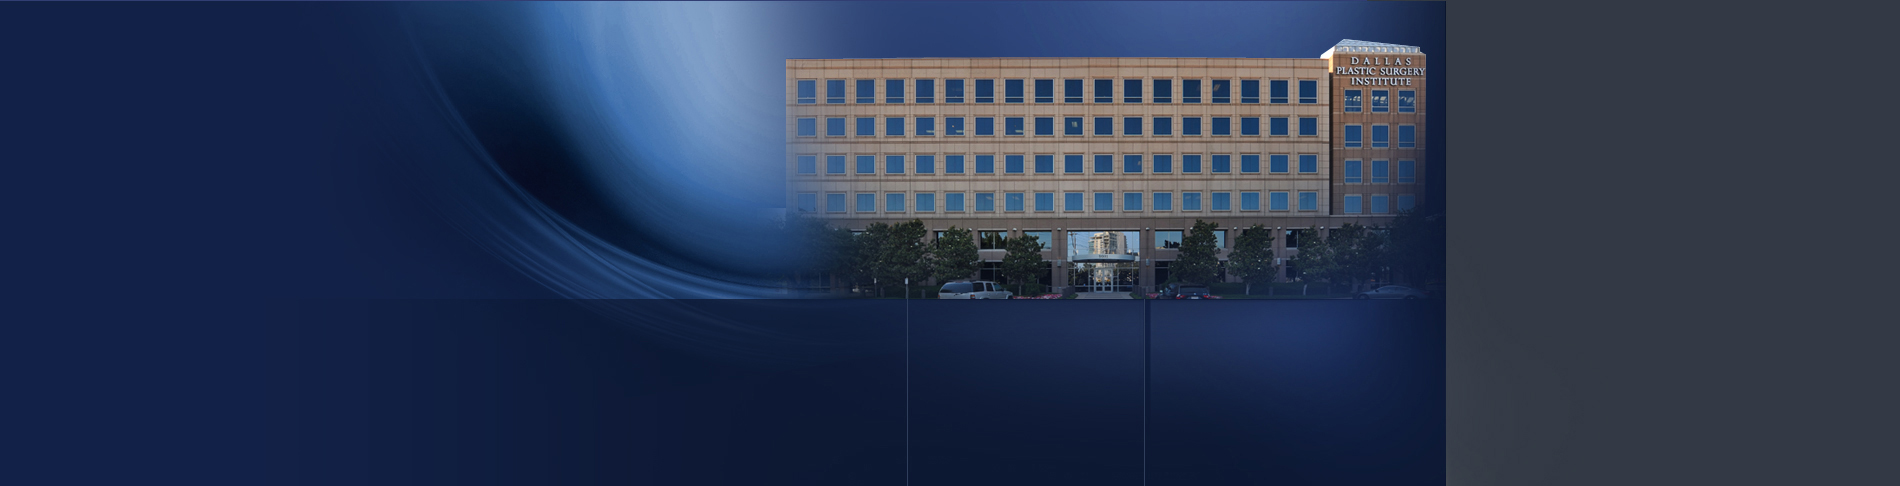 banner image of DPSI building